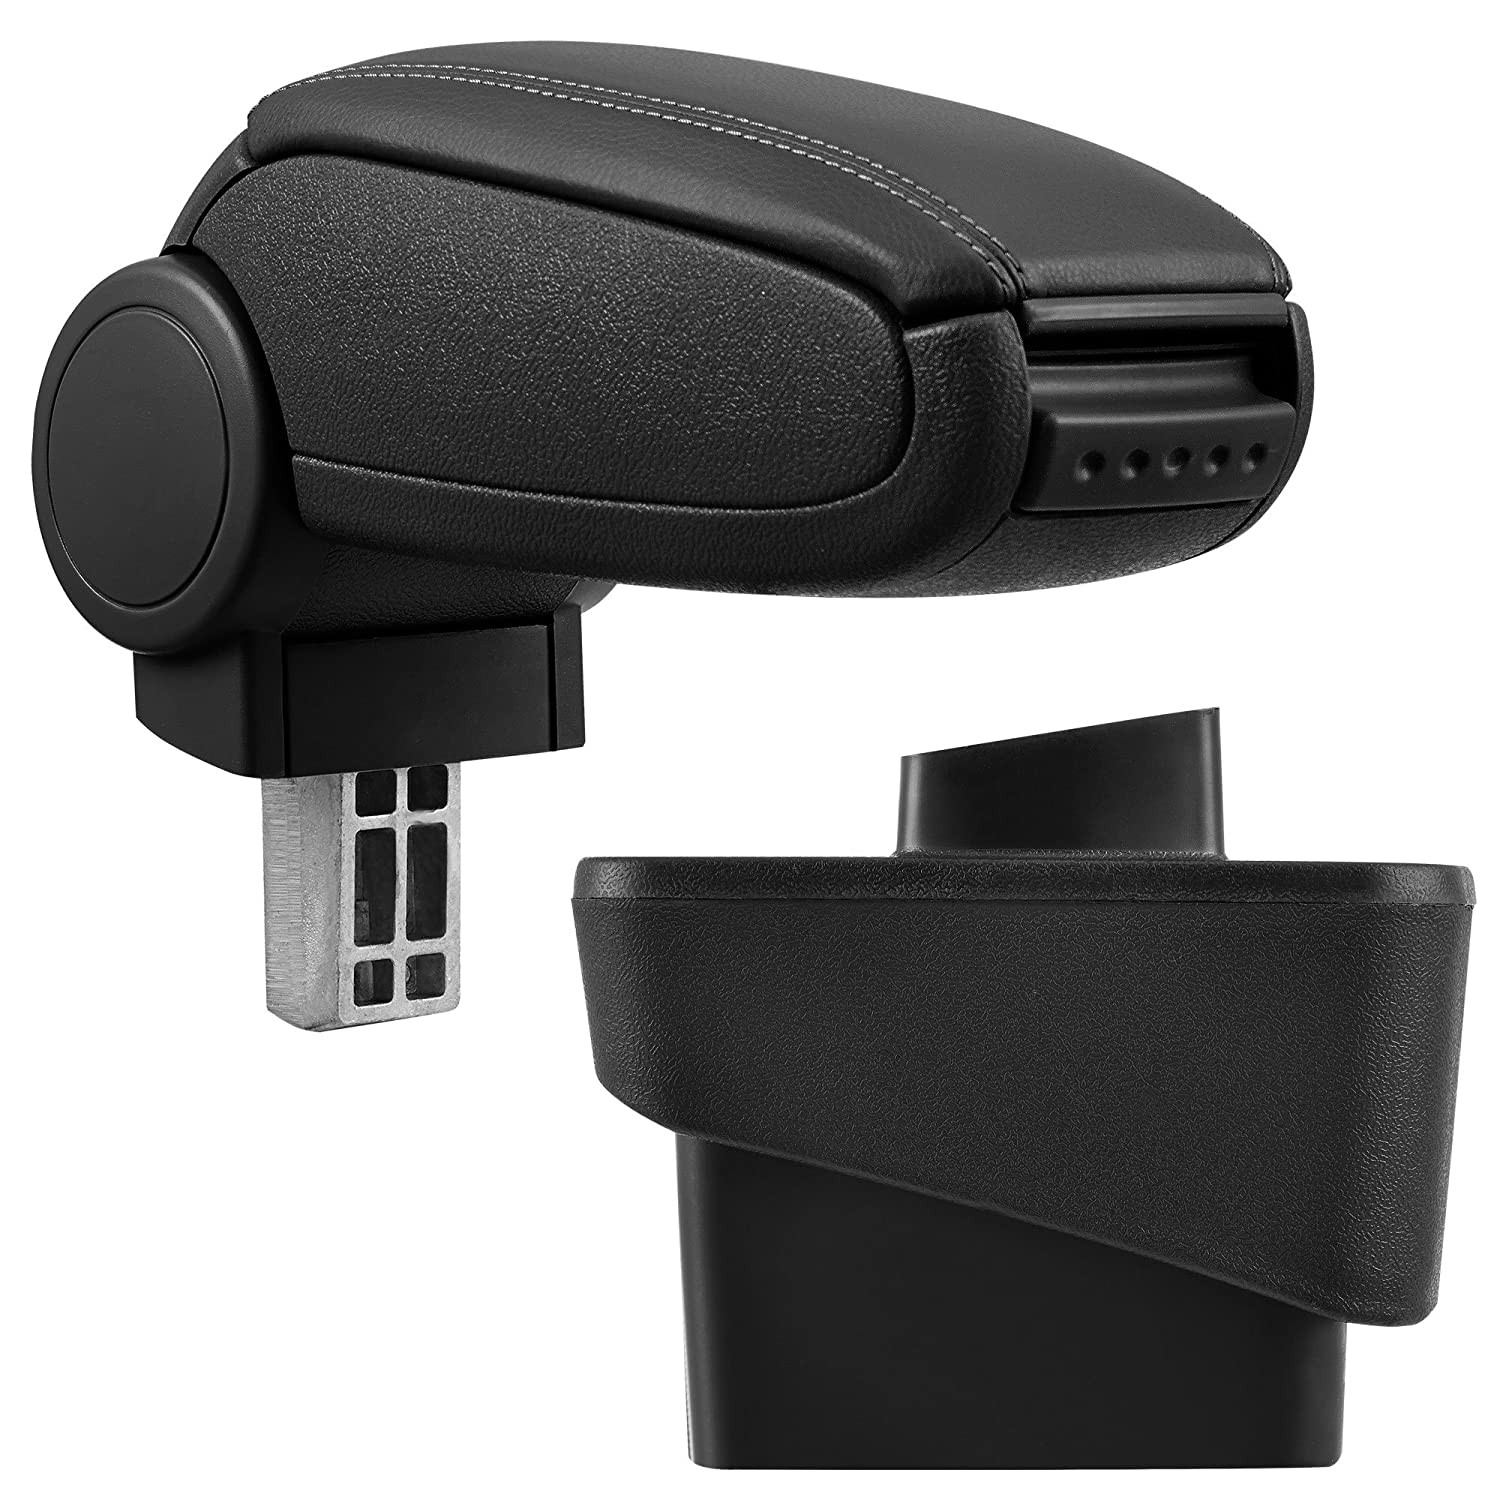 inkl imitation leather cover // black with red stitching Car Armrest Perfekt Fit pro.tec Centre Console Storage Box